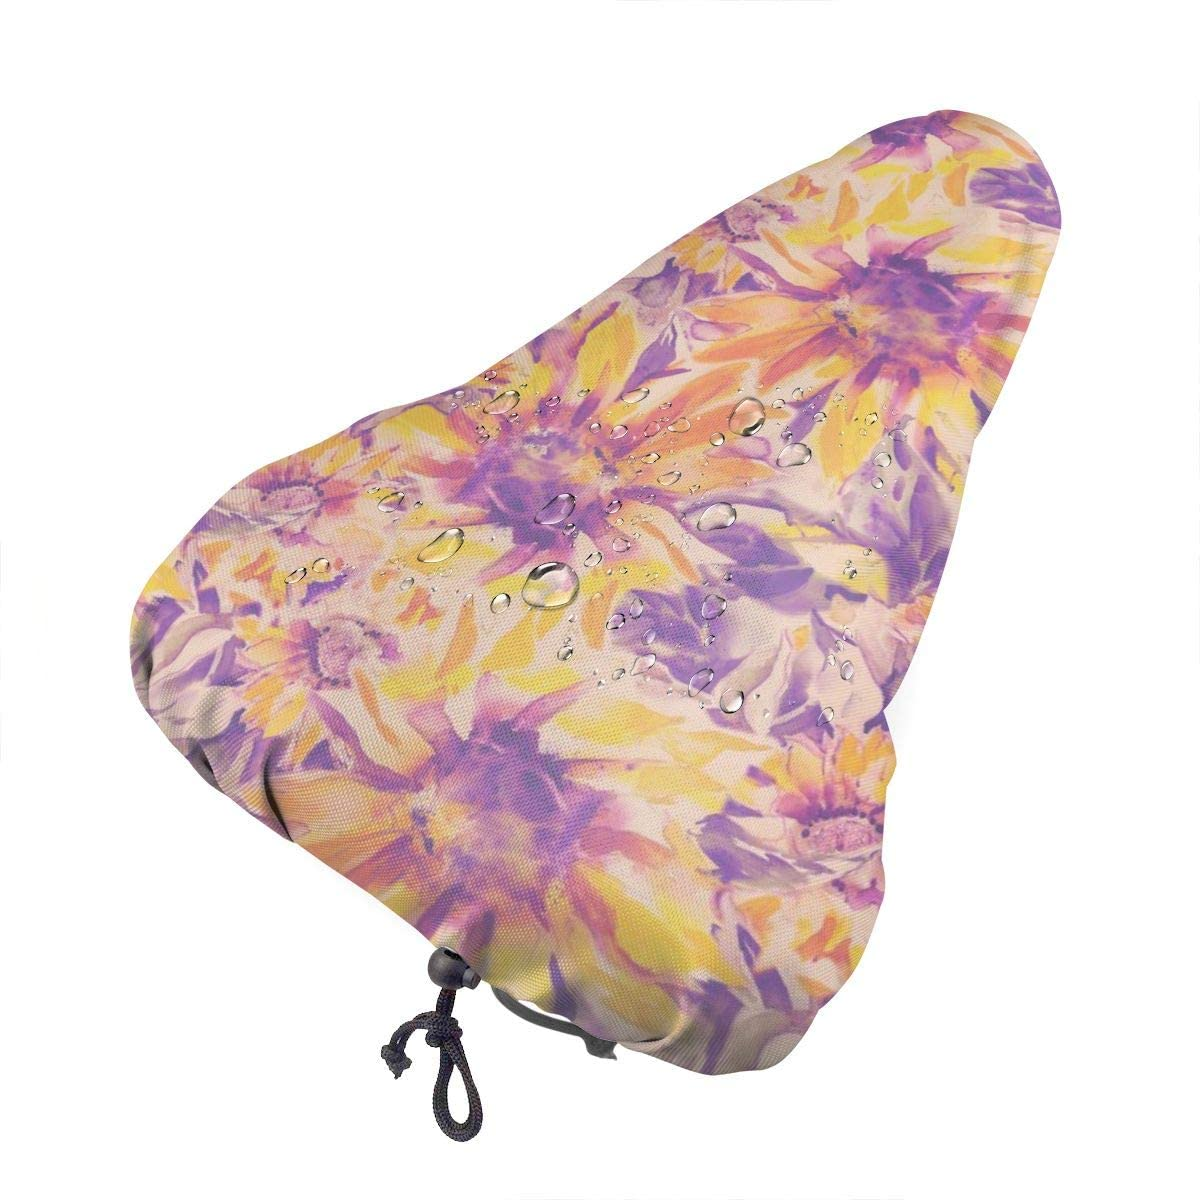 ZHOUSUN Waterproof Bike Seat Cover Tropical Sunflowers Seamless Pattern Bicycle Saddle Rain Dust Covers with Drawstring,Comfort for Women,Men,Kids